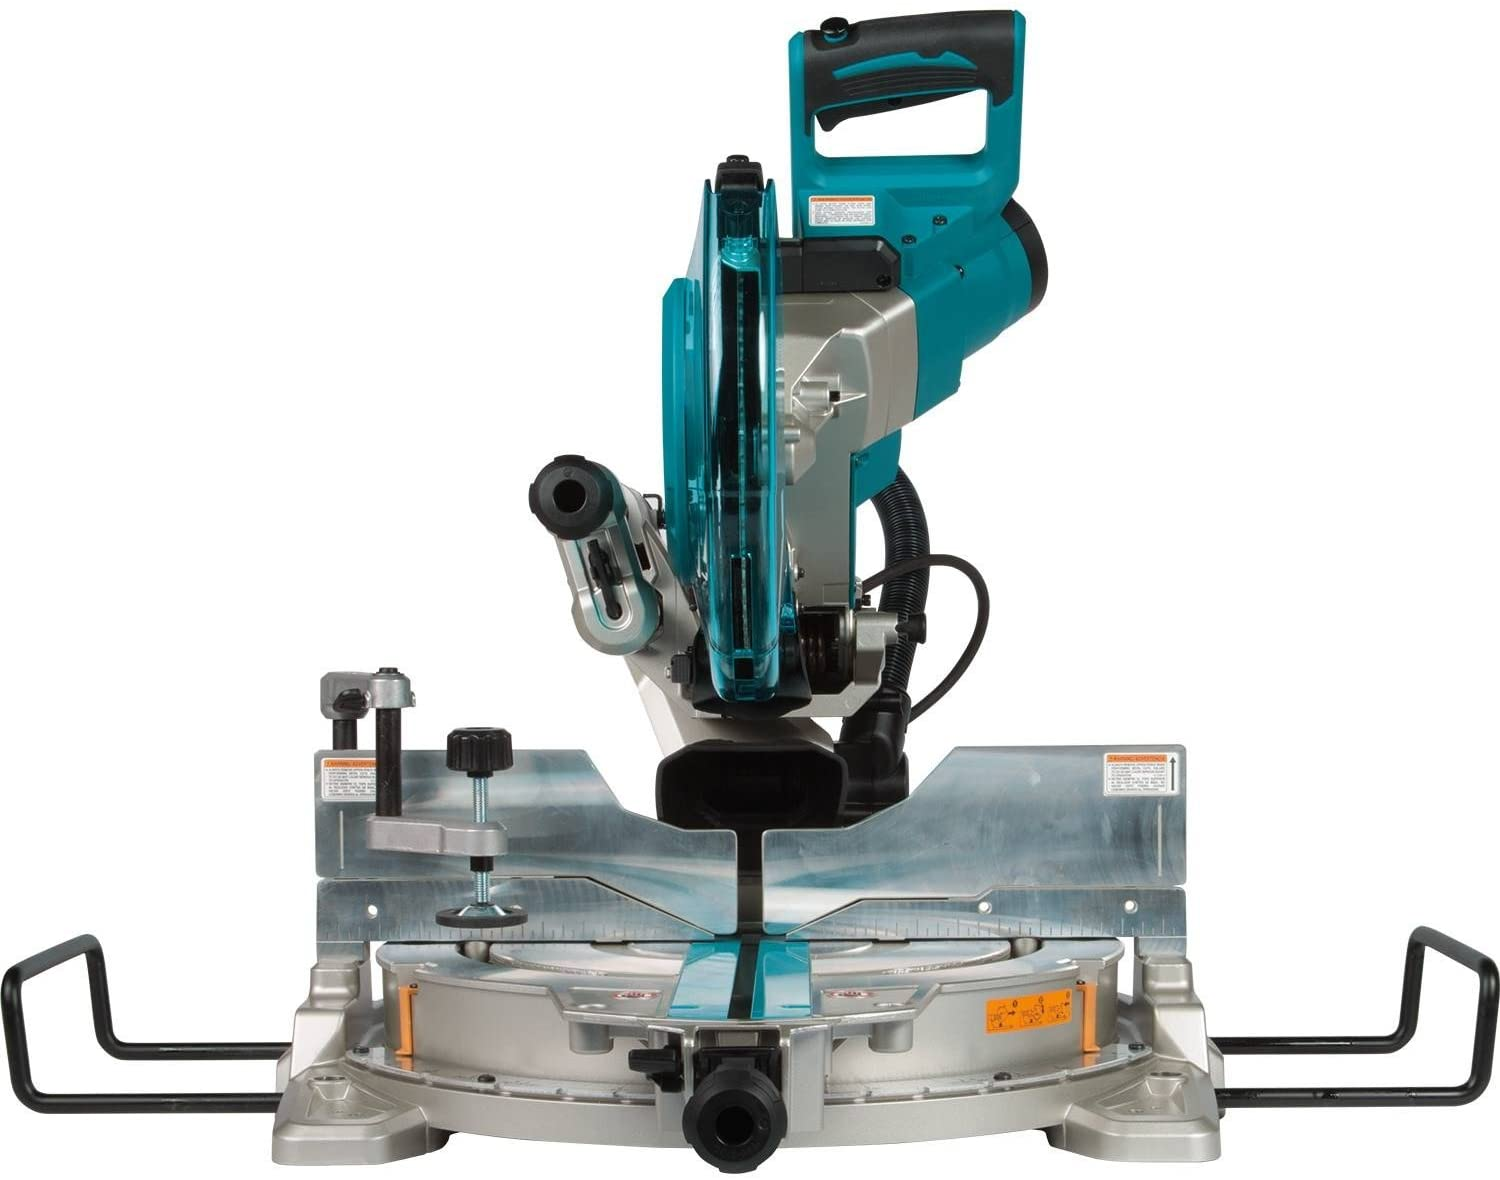 Makita_LS1019L_Miter Saw 1 - SLIDE COMPOUND MITRE SAW 1510W – (250 mm)